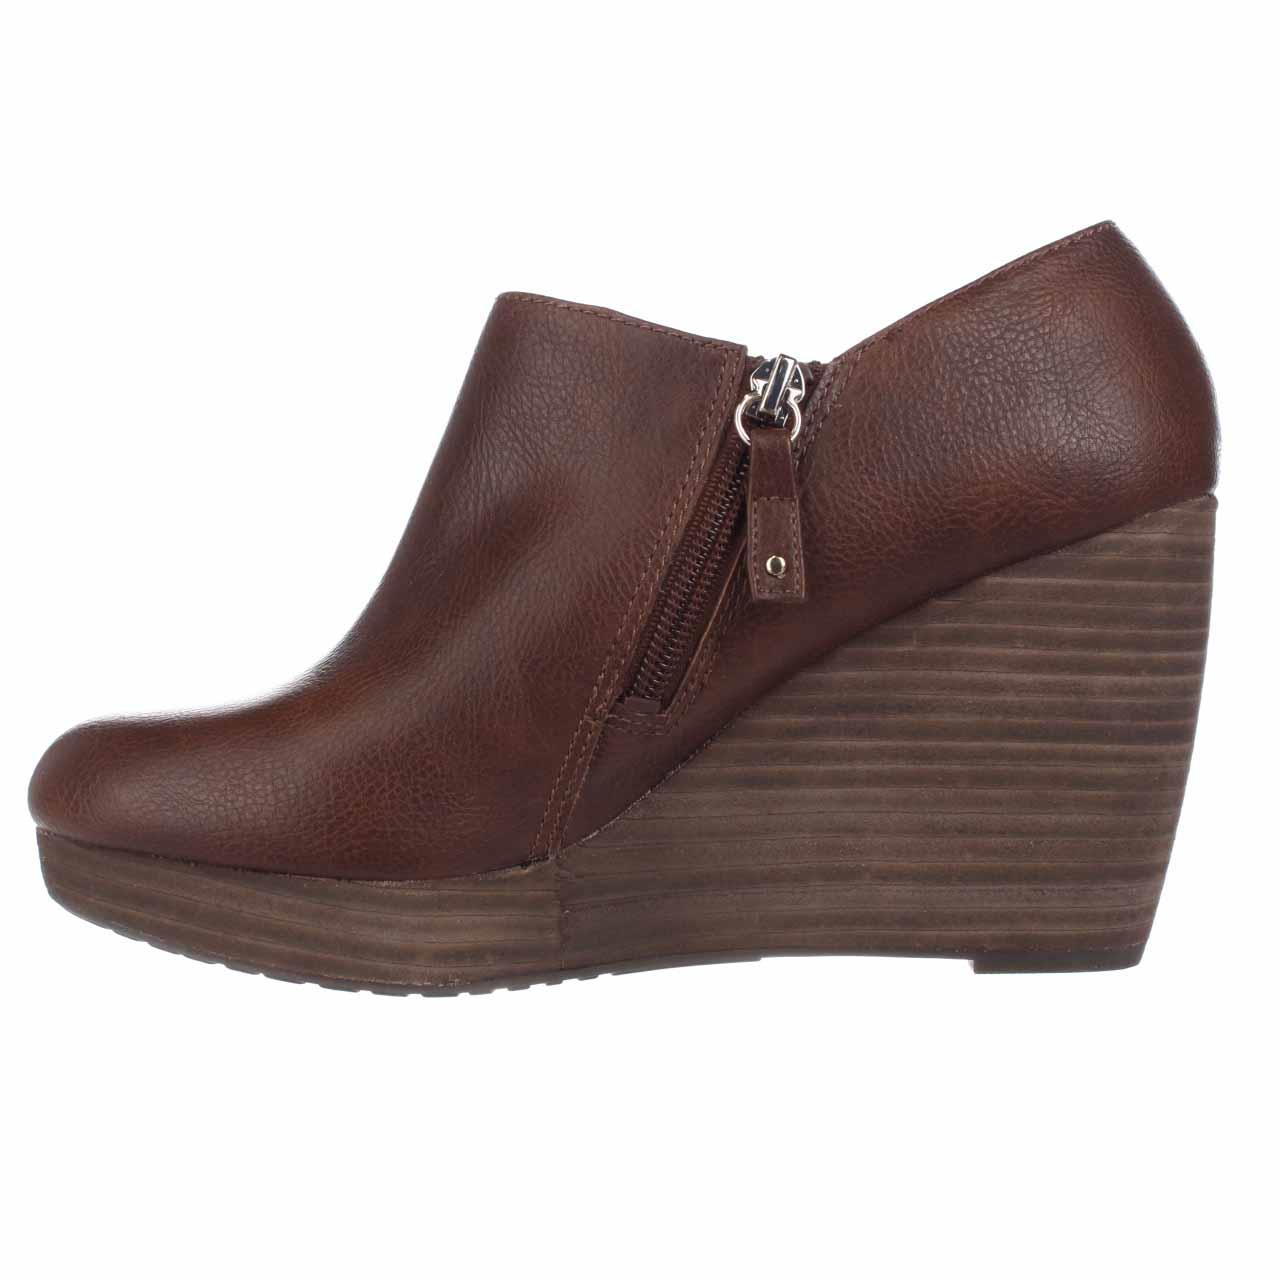 a334704269ba Dr. Scholl s Shoes - Womens Dr. Scholl s Honor Wedge Platform Booties -  Whiskey - Walmart.com